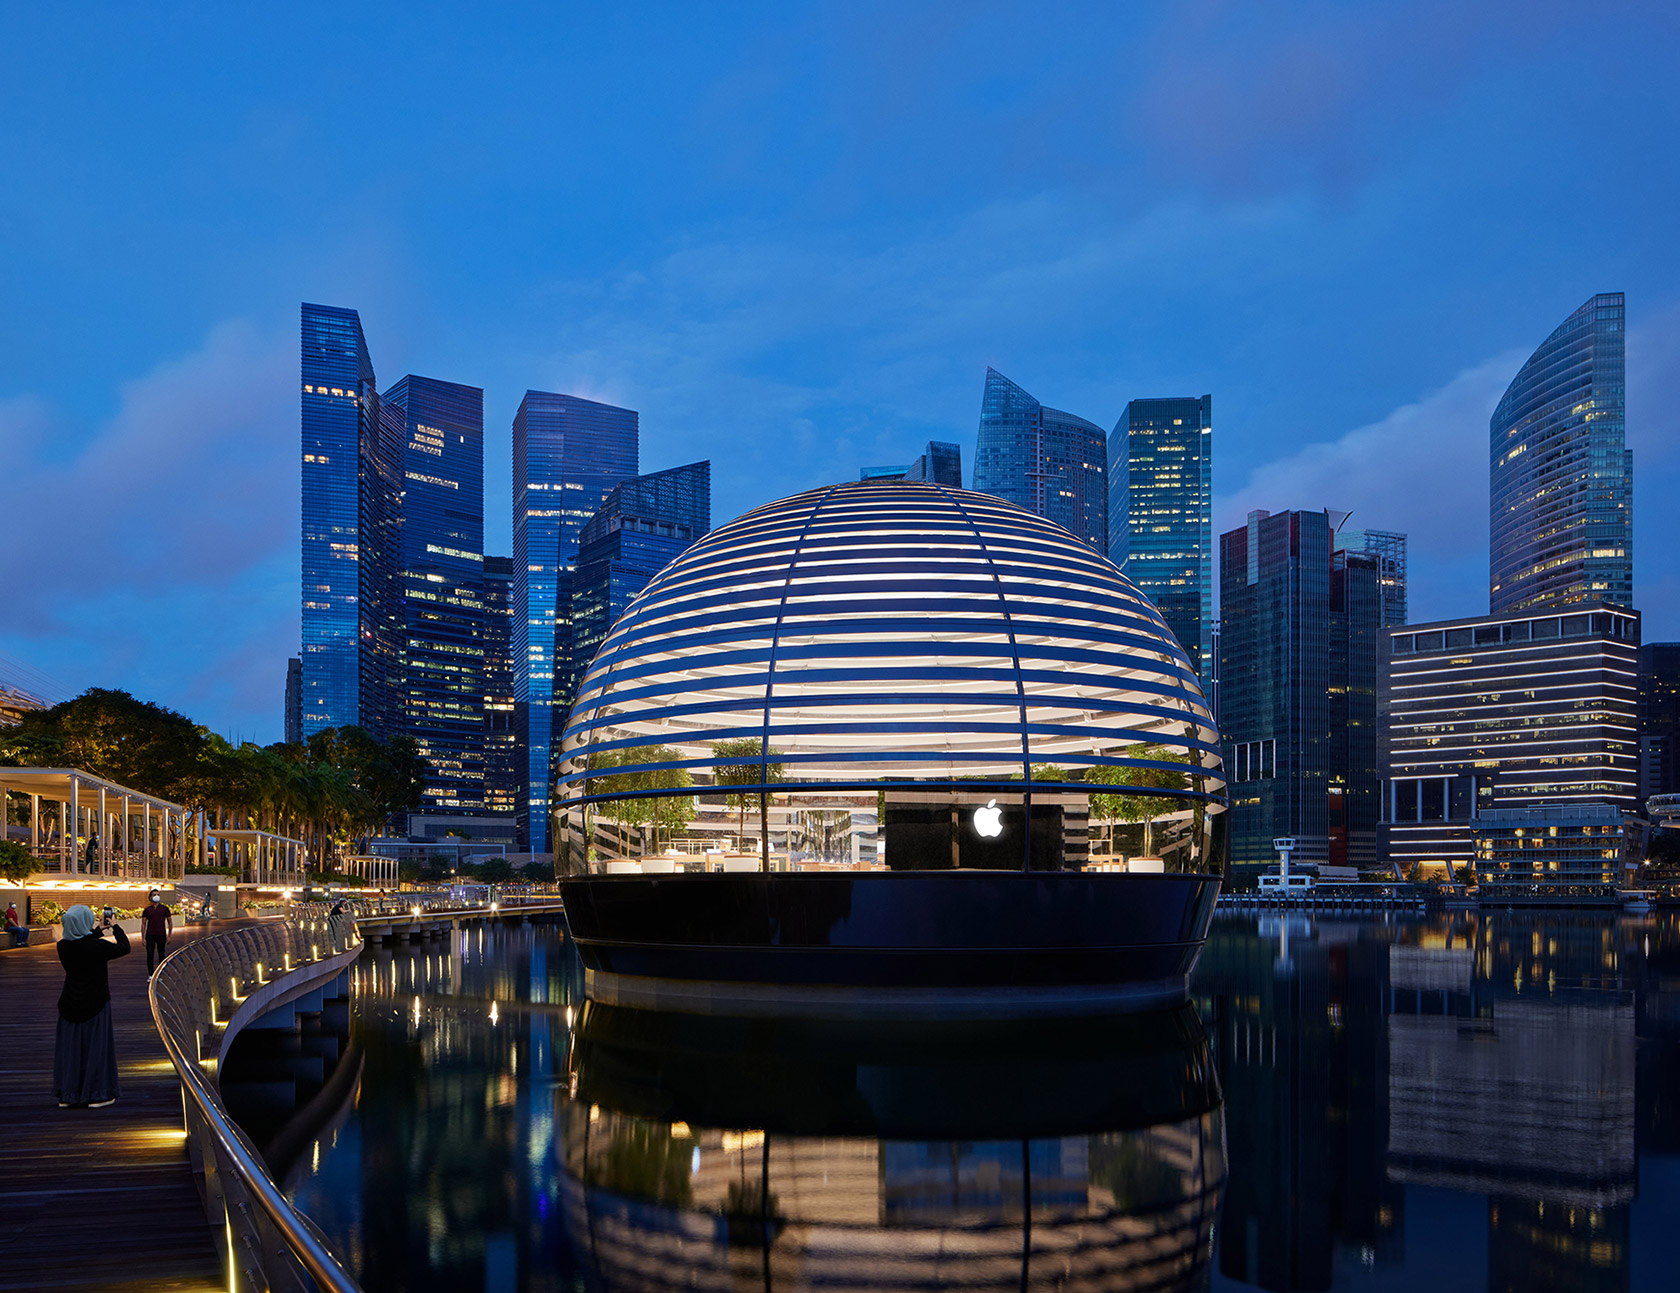 Apple Marina Bay Sands Floating Sphere Singapore